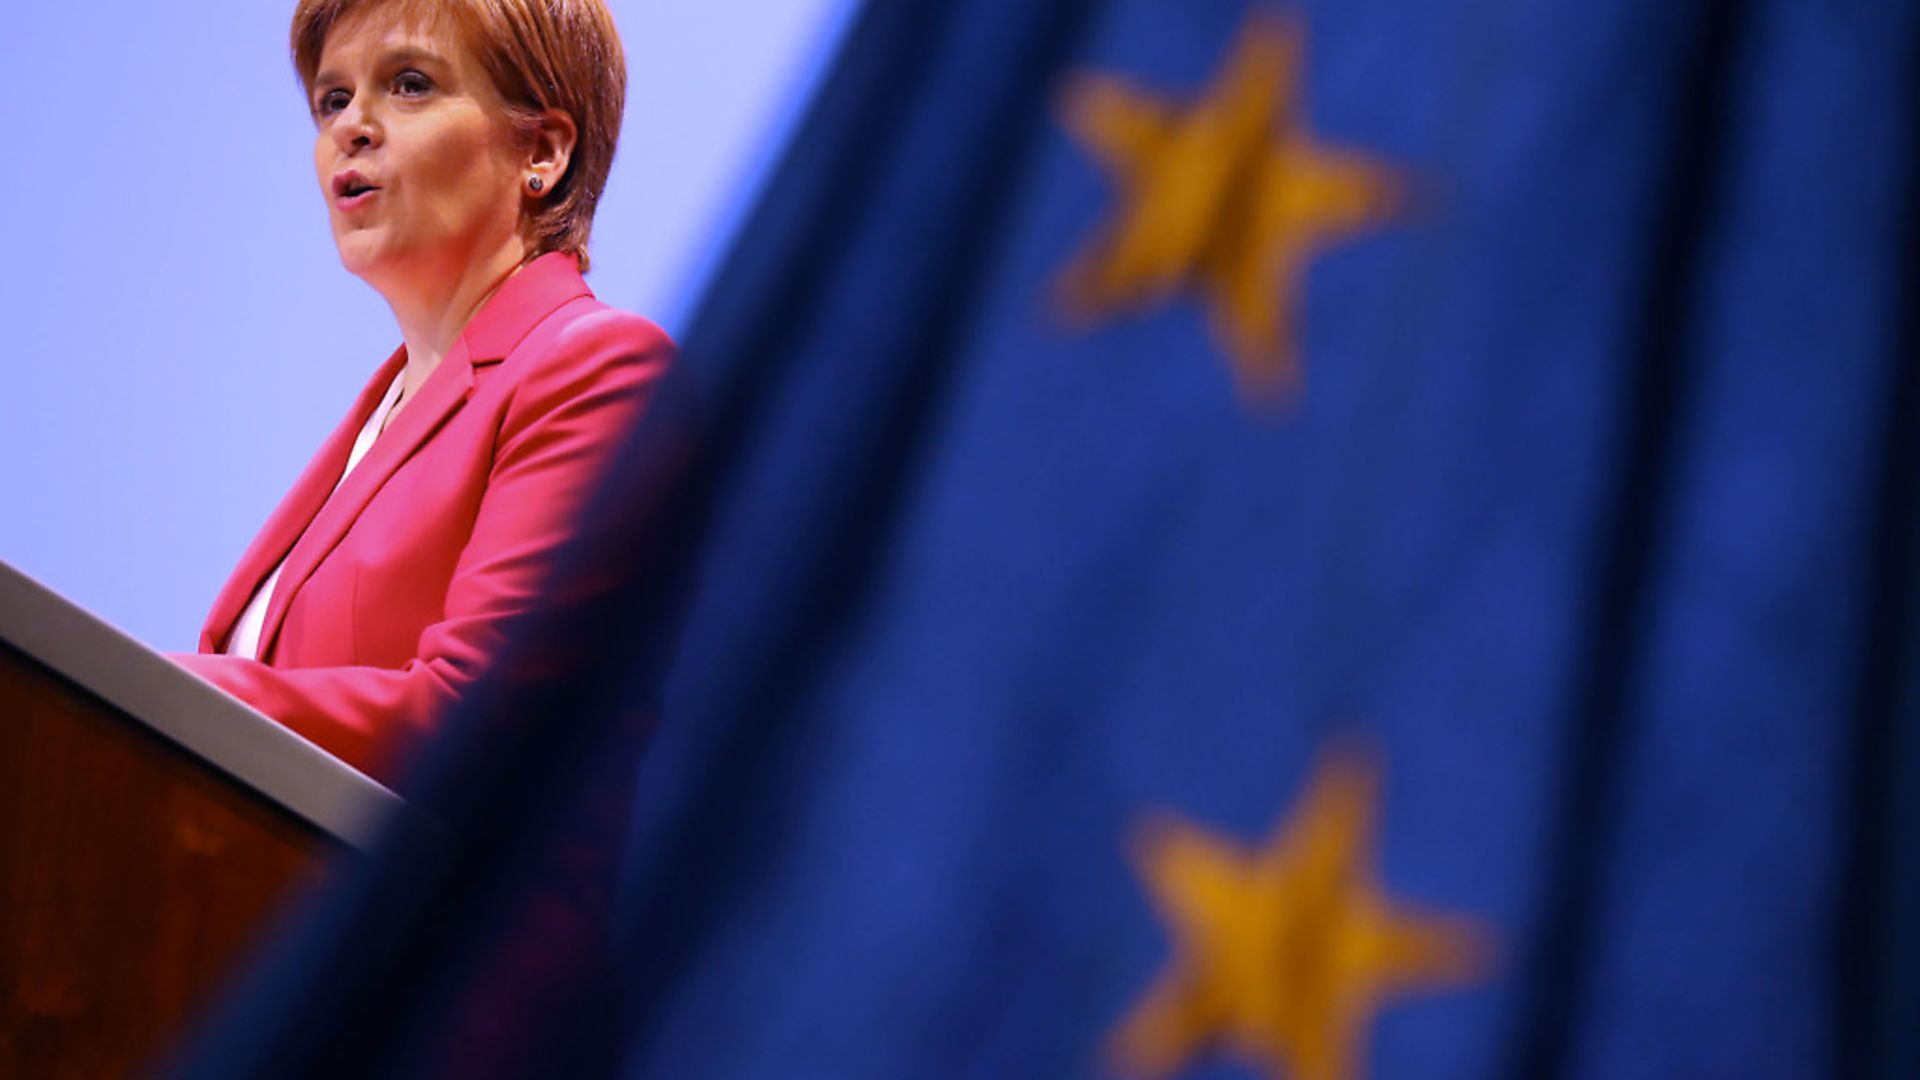 First Minister Nicola Sturgeon. Photograph: Andrew Milligan/PA. - Credit: PA Wire/PA Images